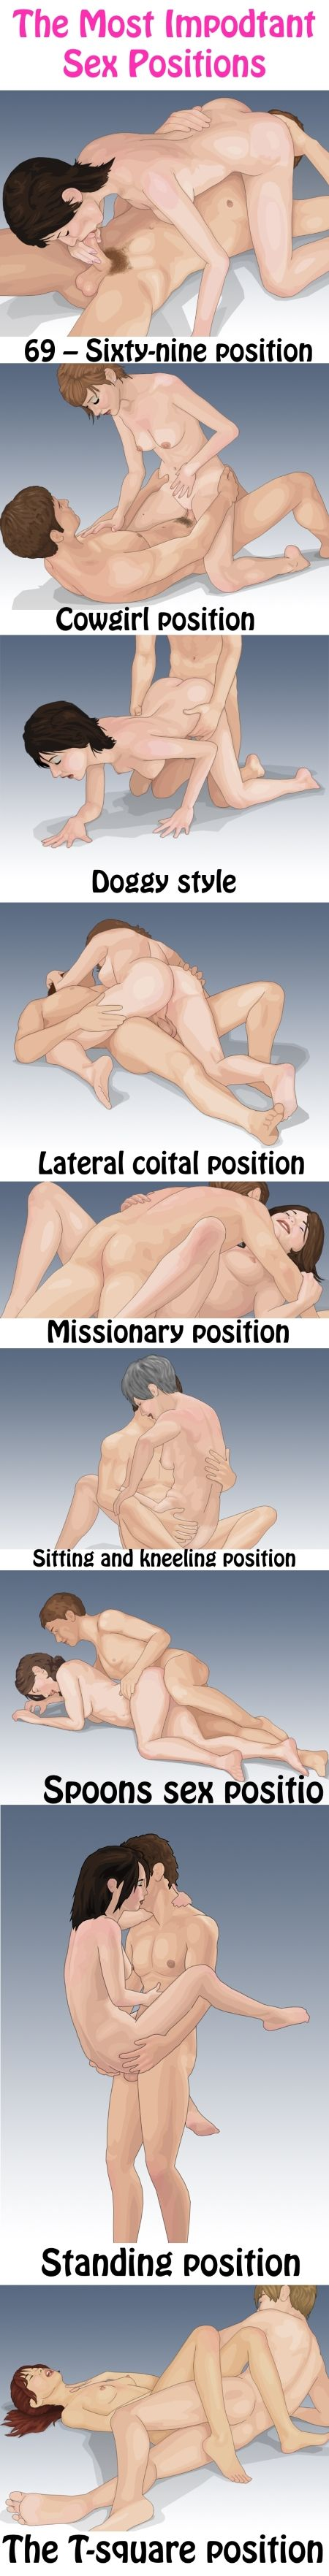 Not girls favorite sex positions